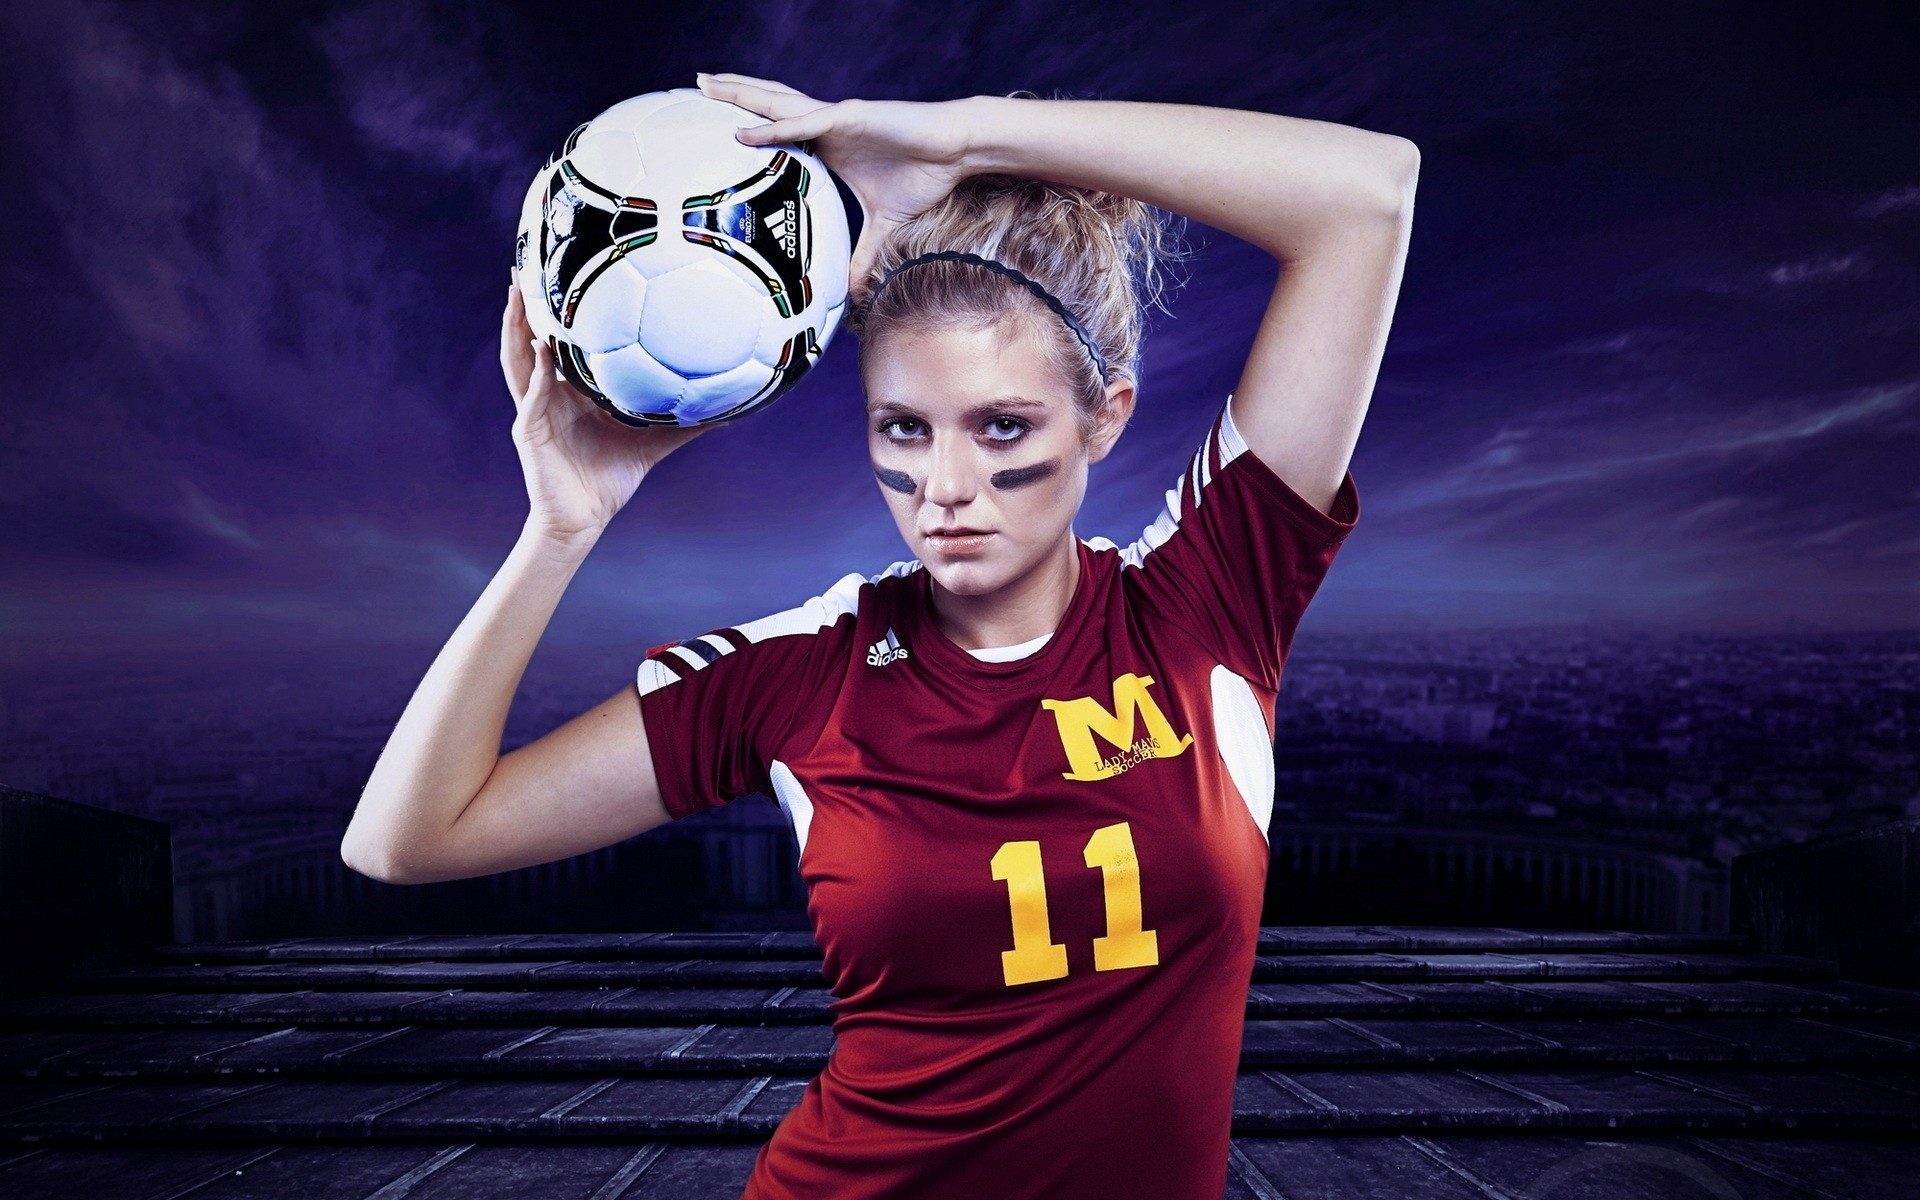 Make contact with the most reliable football gambling agent and get the desired services